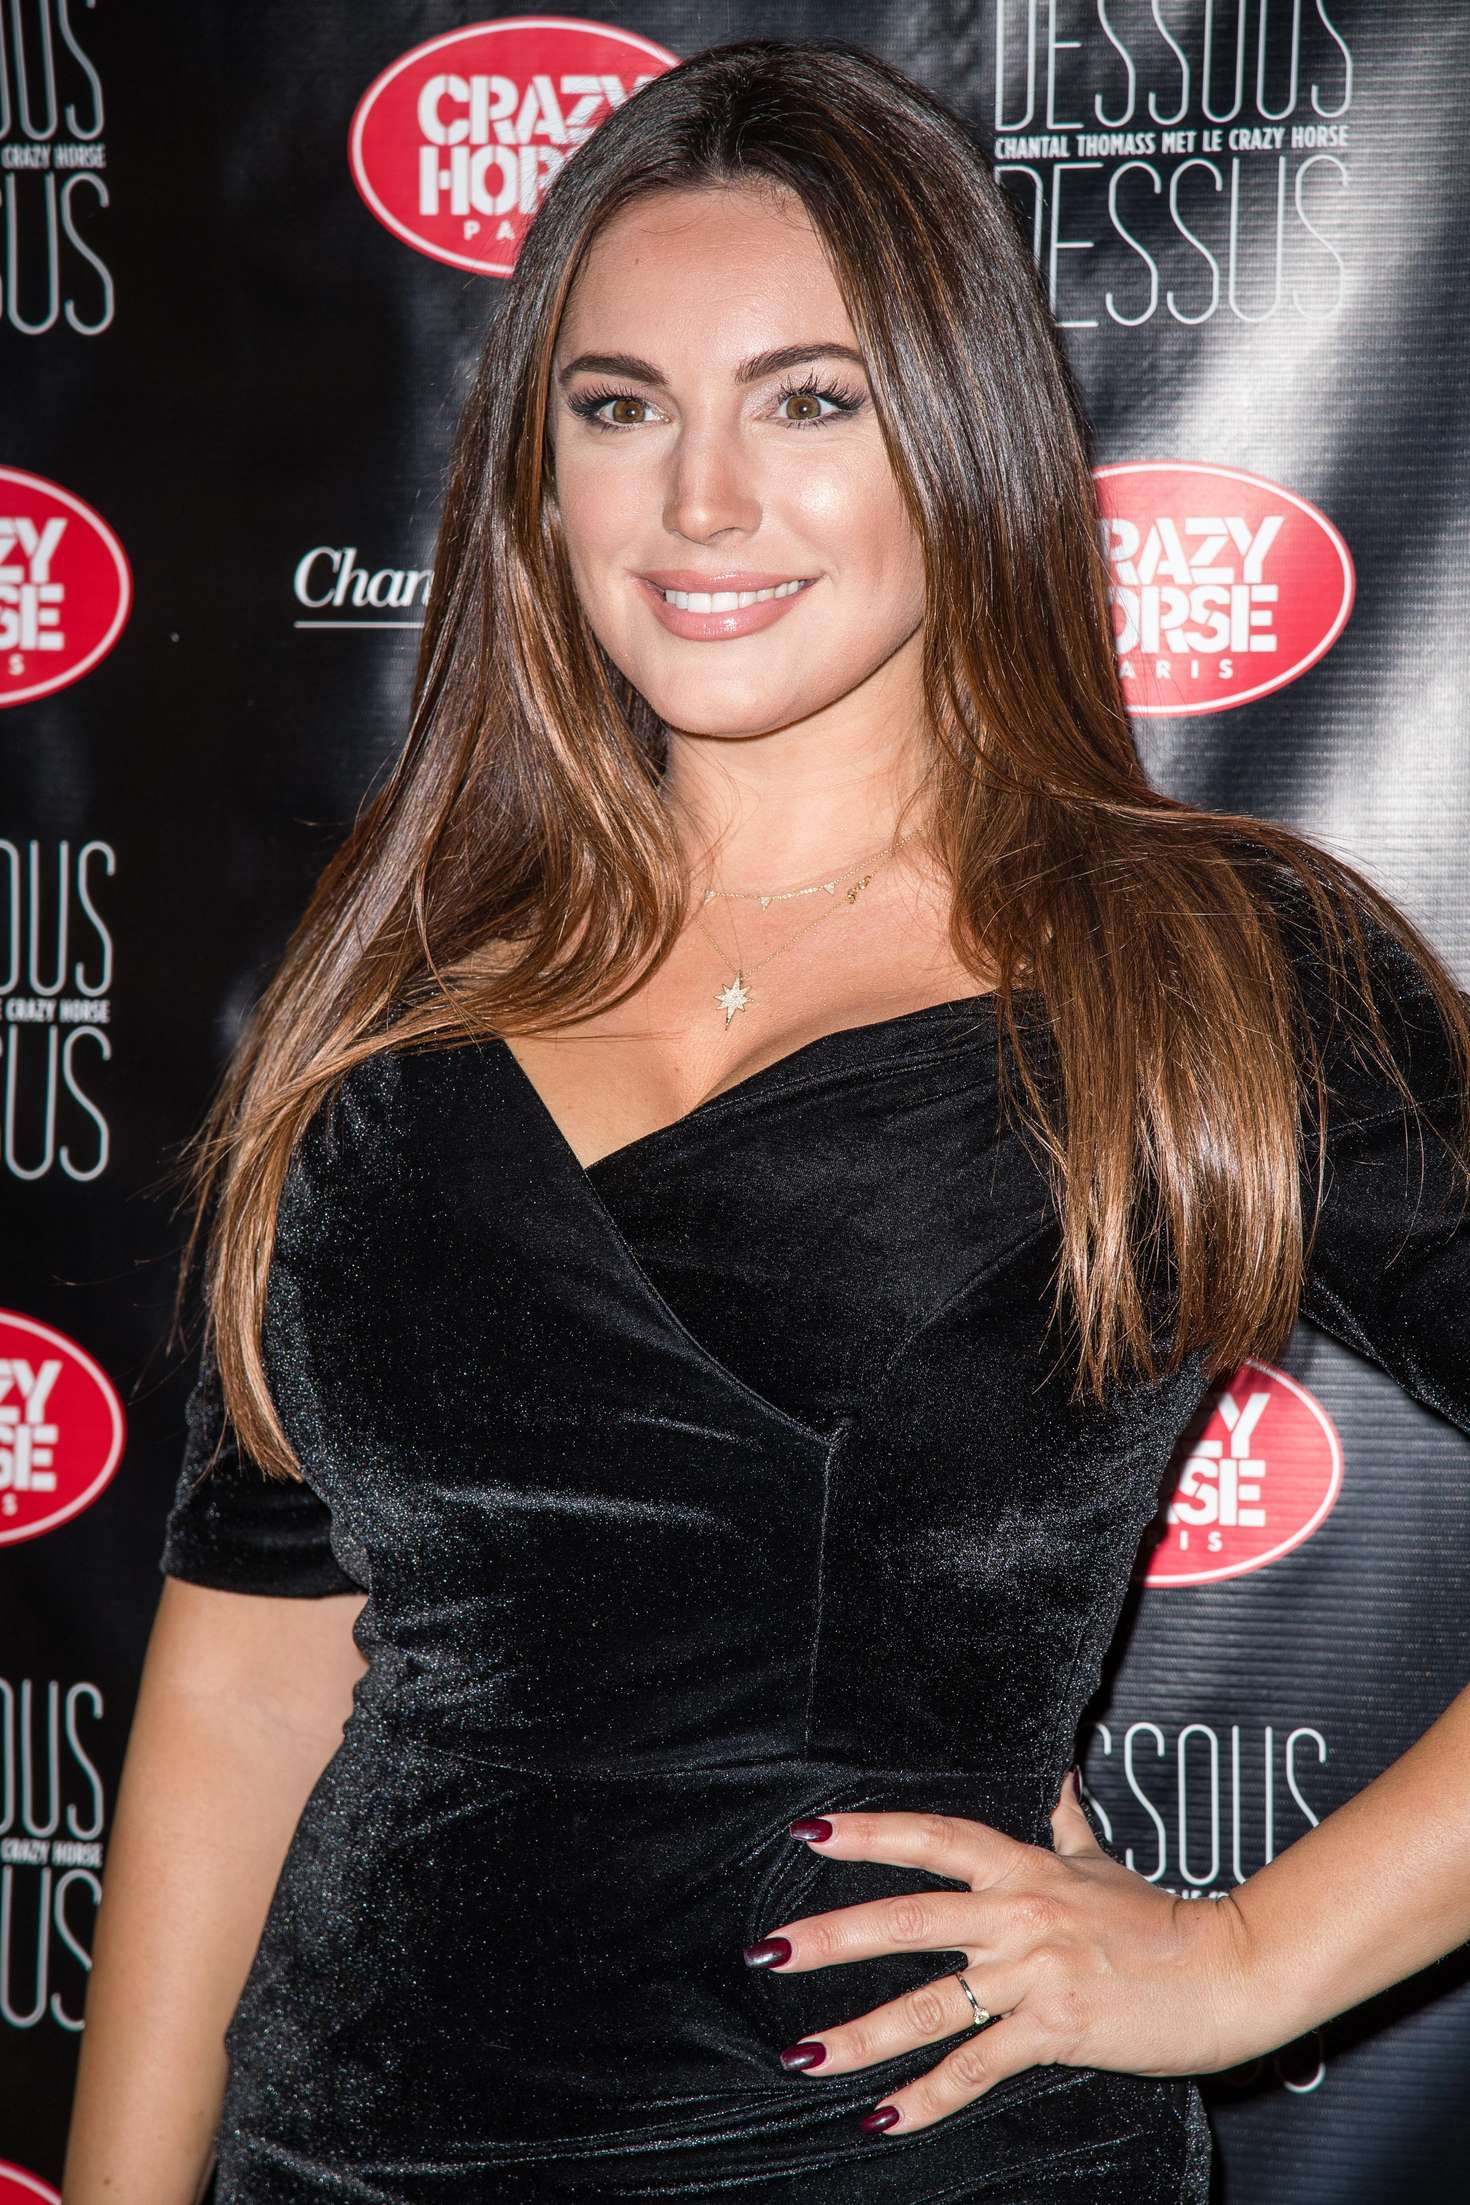 Kelly Brook Chantal Thomass Dessous Dessus Show In Paris